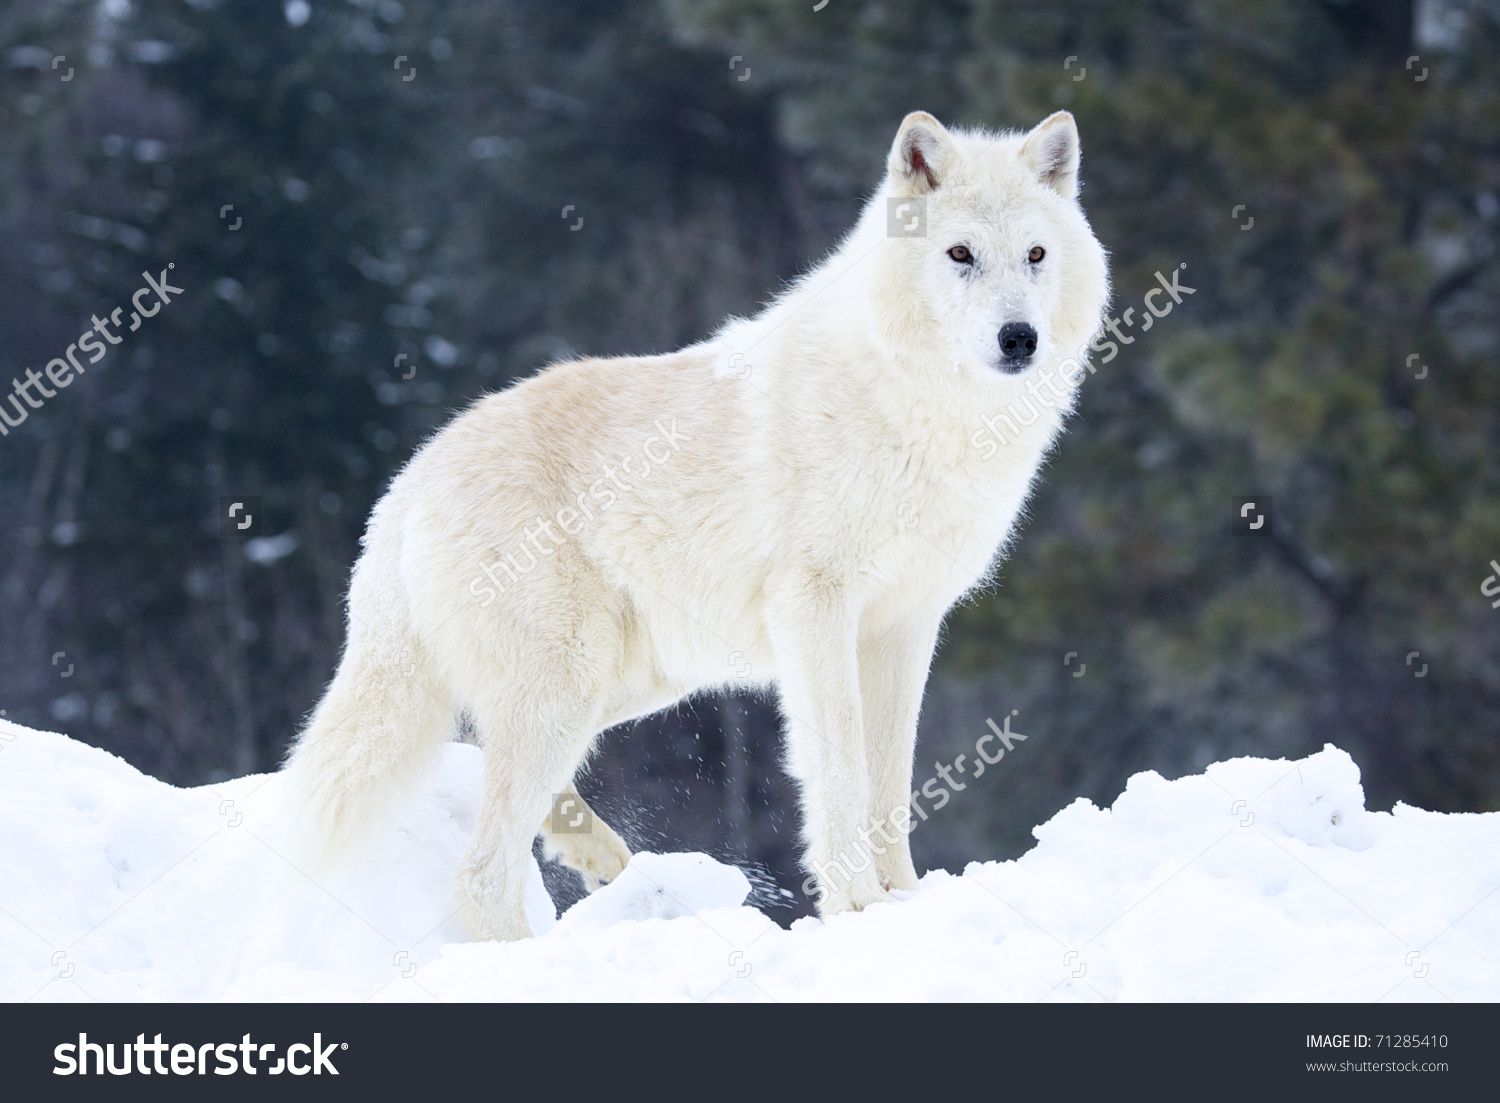 Arctic Wolf clipart #13, Download drawings